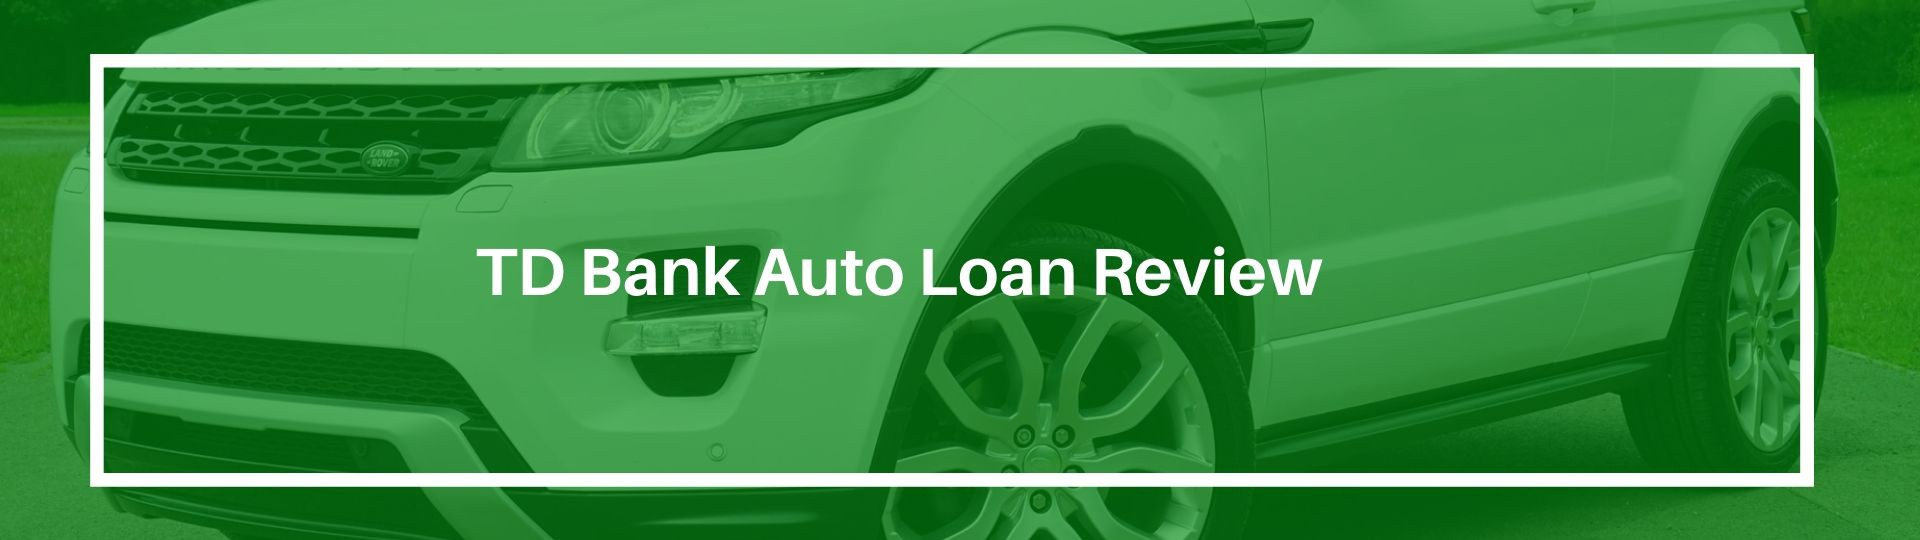 Td Bank Car Loan >> Td Bank Auto Loan Review Rates Refinance Payment And More